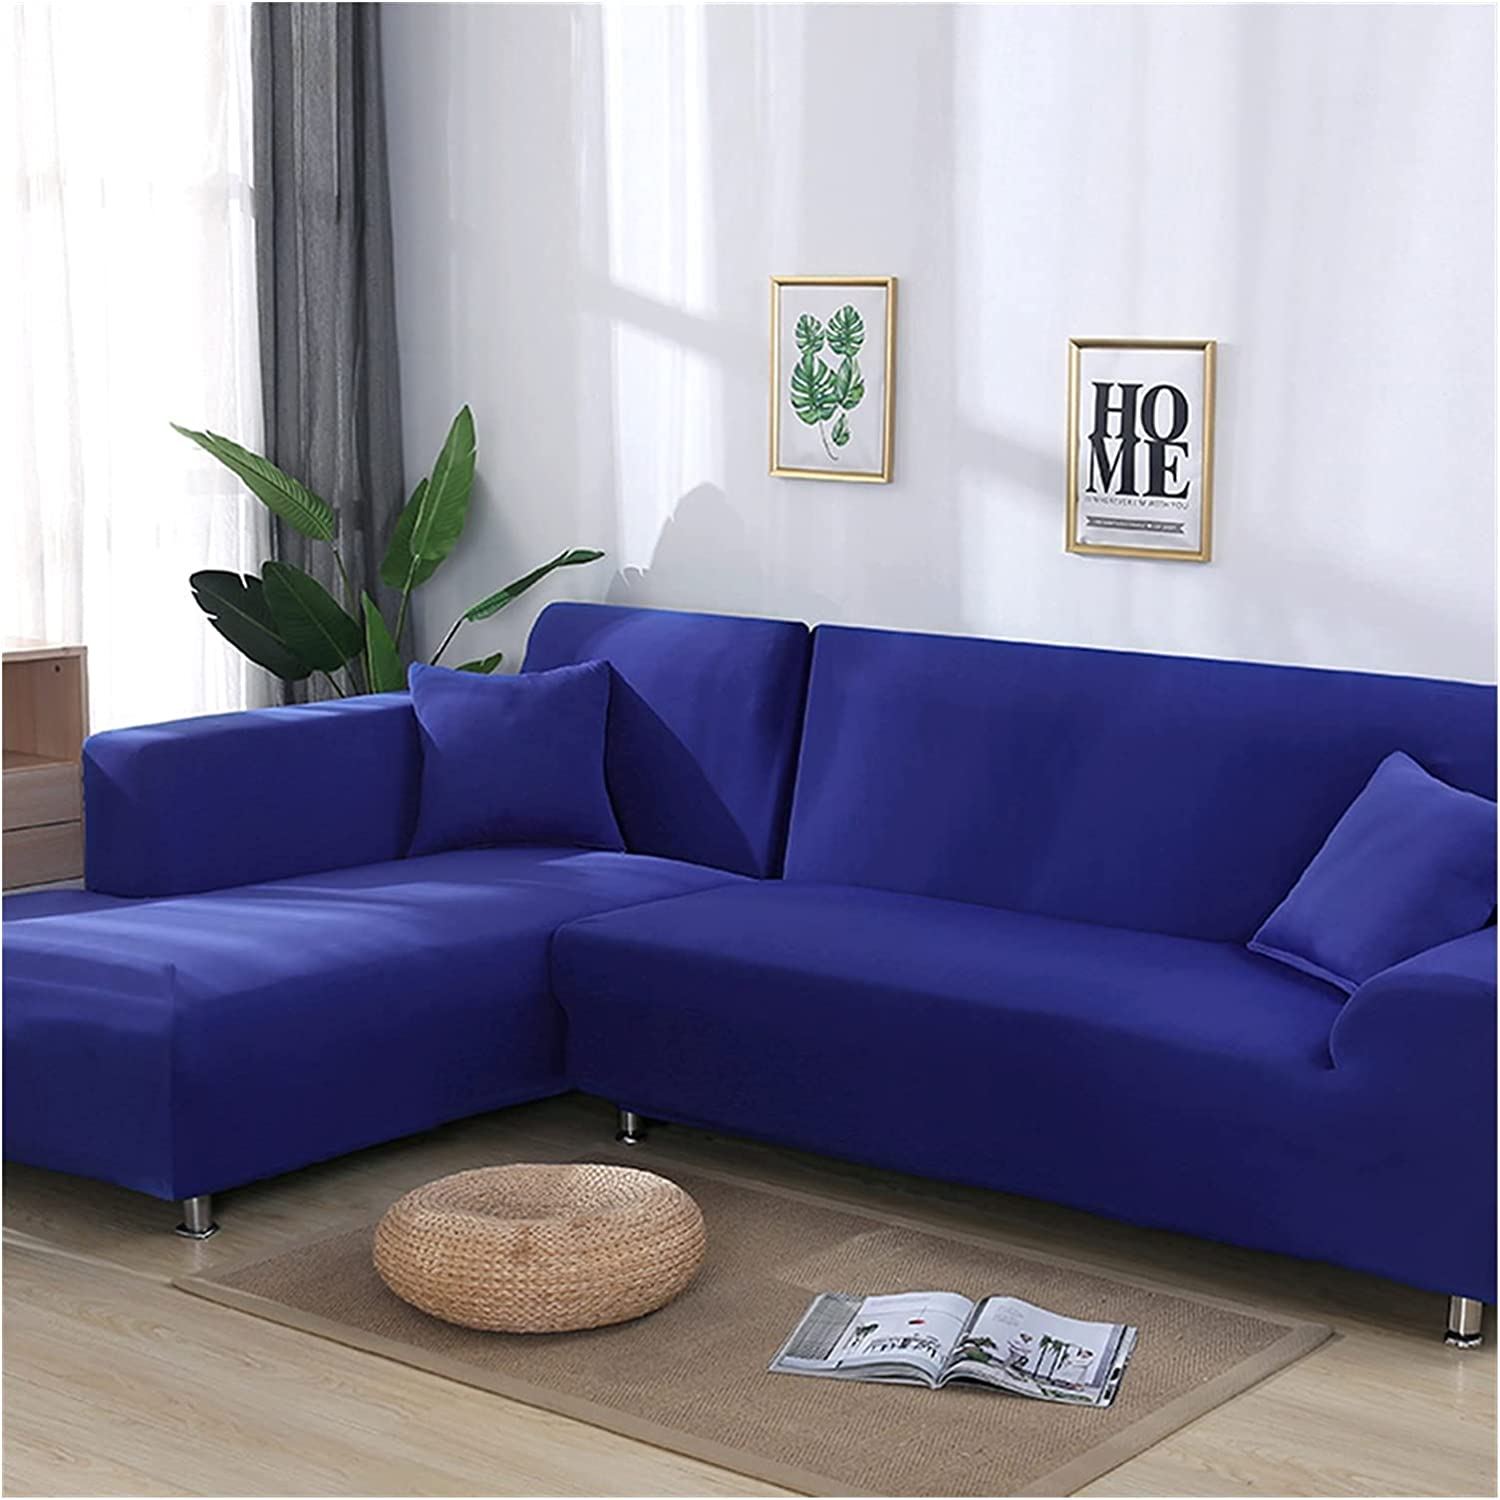 Max 83% OFF Corner Sofa unisex Covers for Living Cove Elastic Couch Room Slipcovers